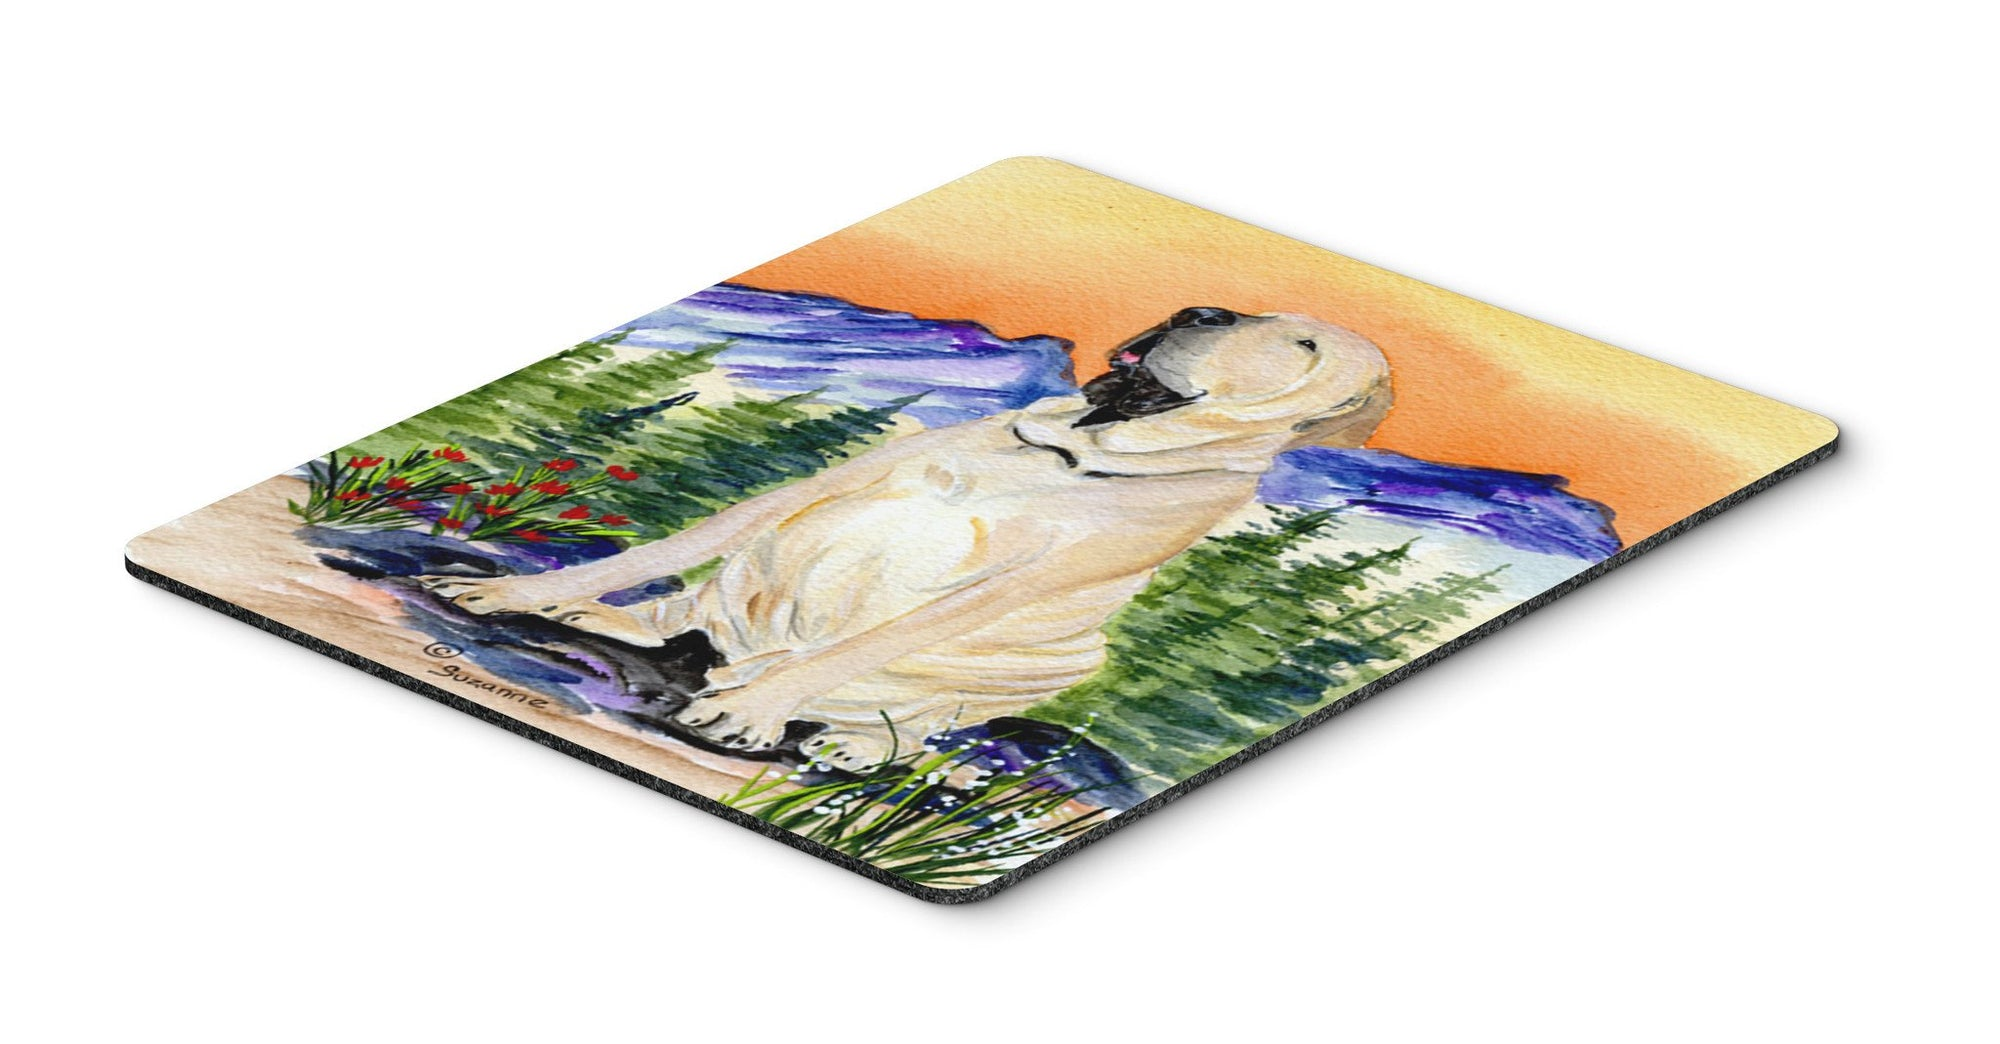 Brazilian Mastiff  / Fila Brasileiro  Mouse Pad / Hot Pad / Trivet by Caroline's Treasures